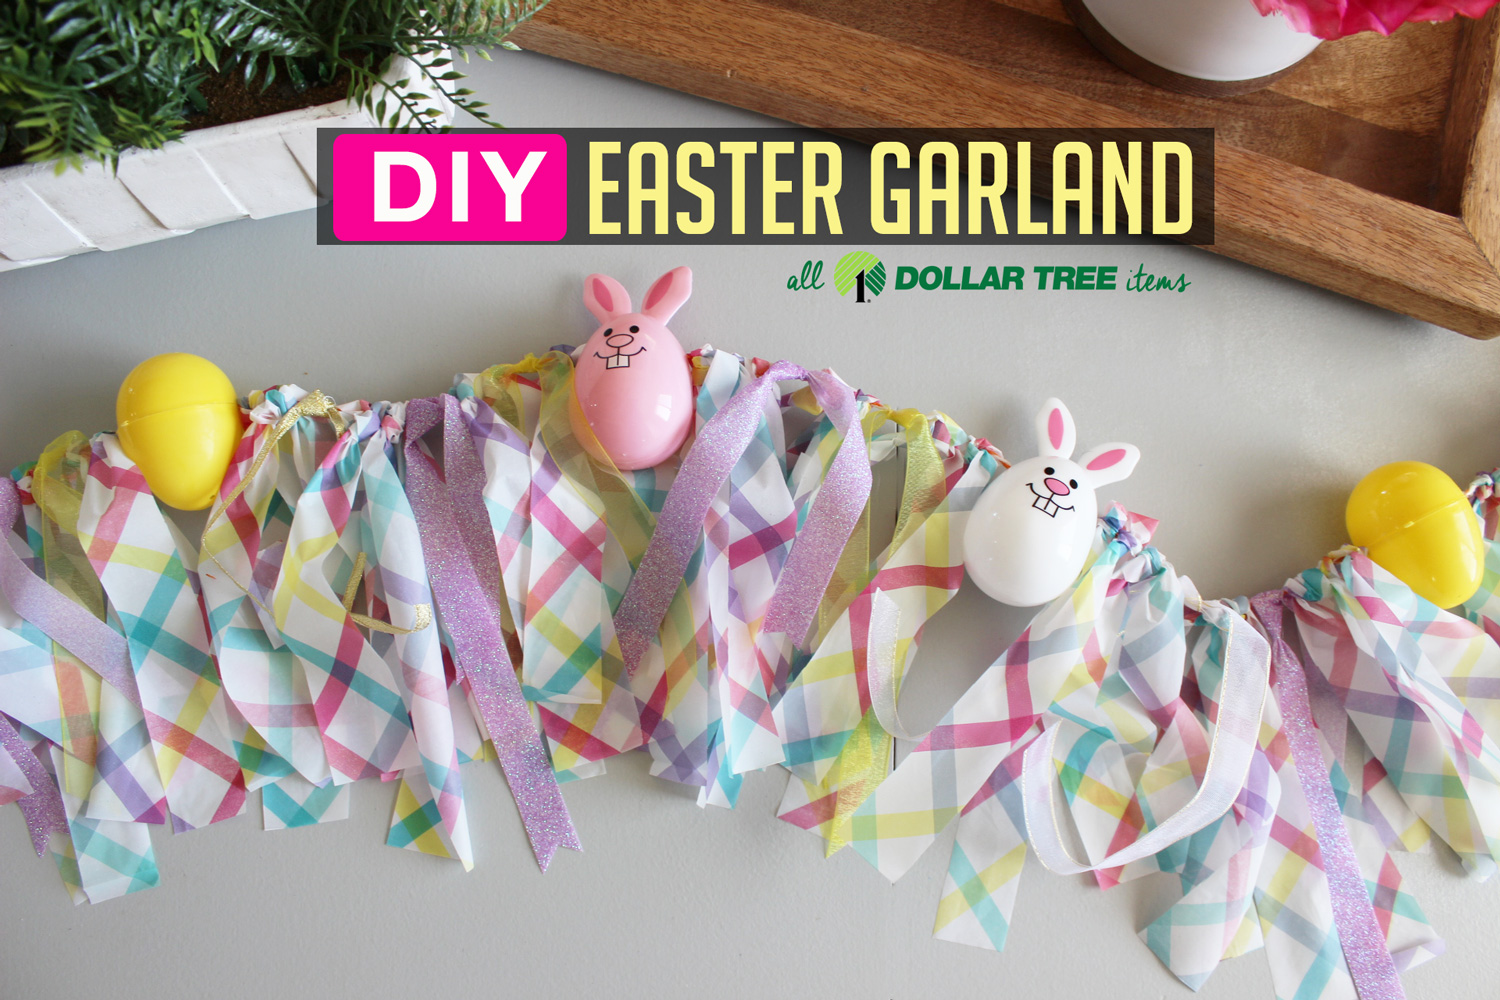 Diy Easter Egg Garland Decoration With Dollar Tree Items